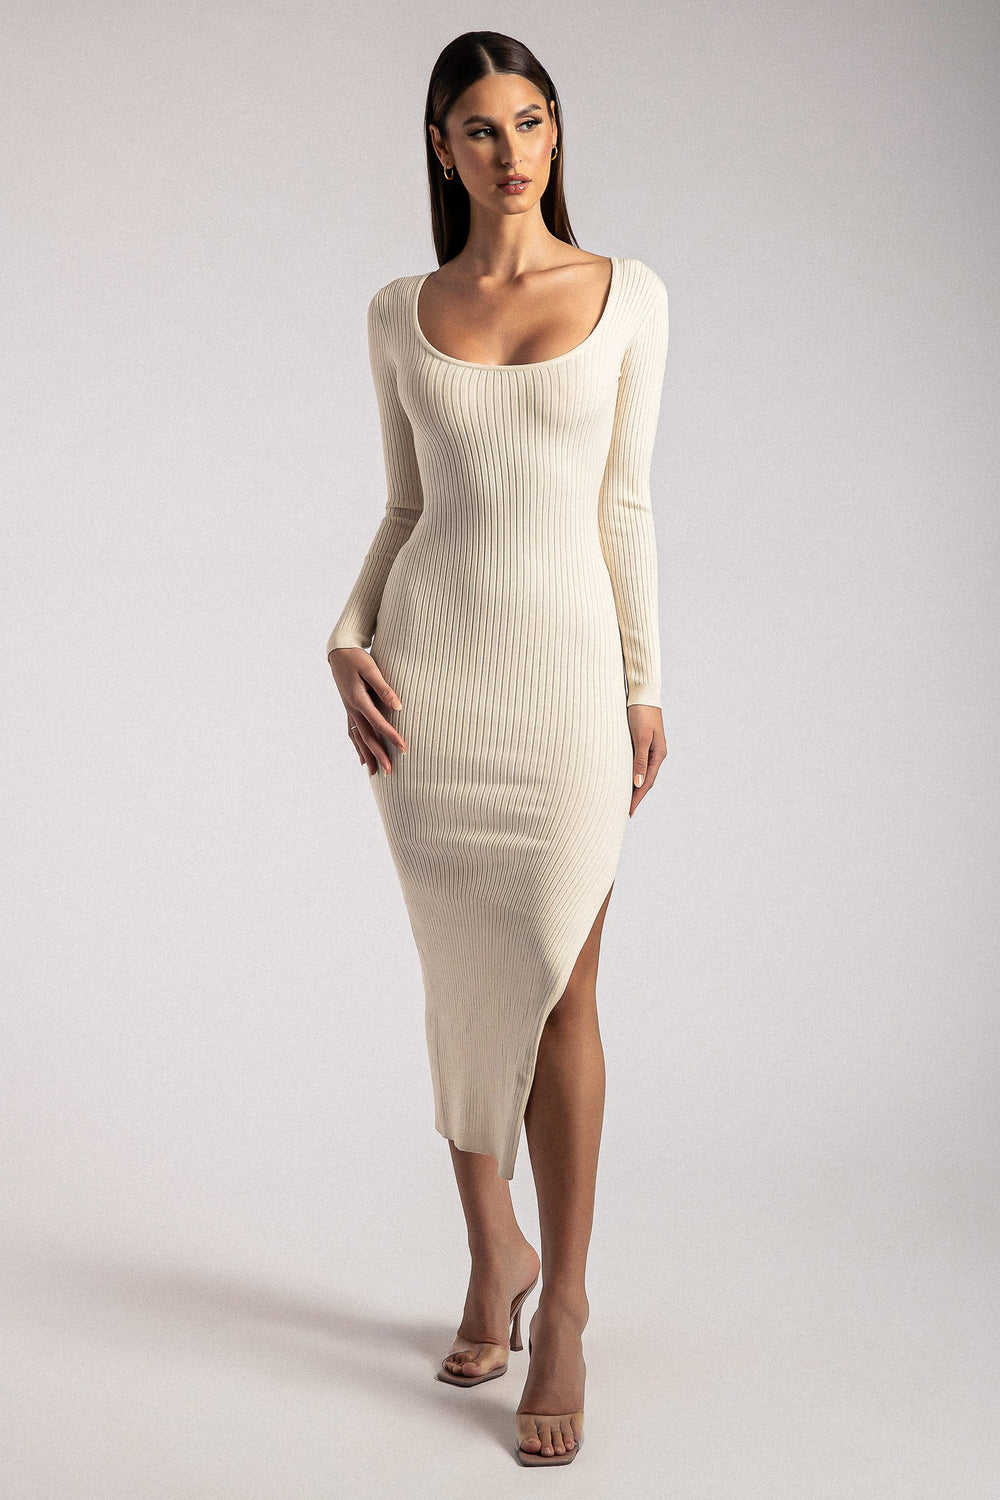 Cali Long Sleeve Scoop Neck Midi Dress - Cream